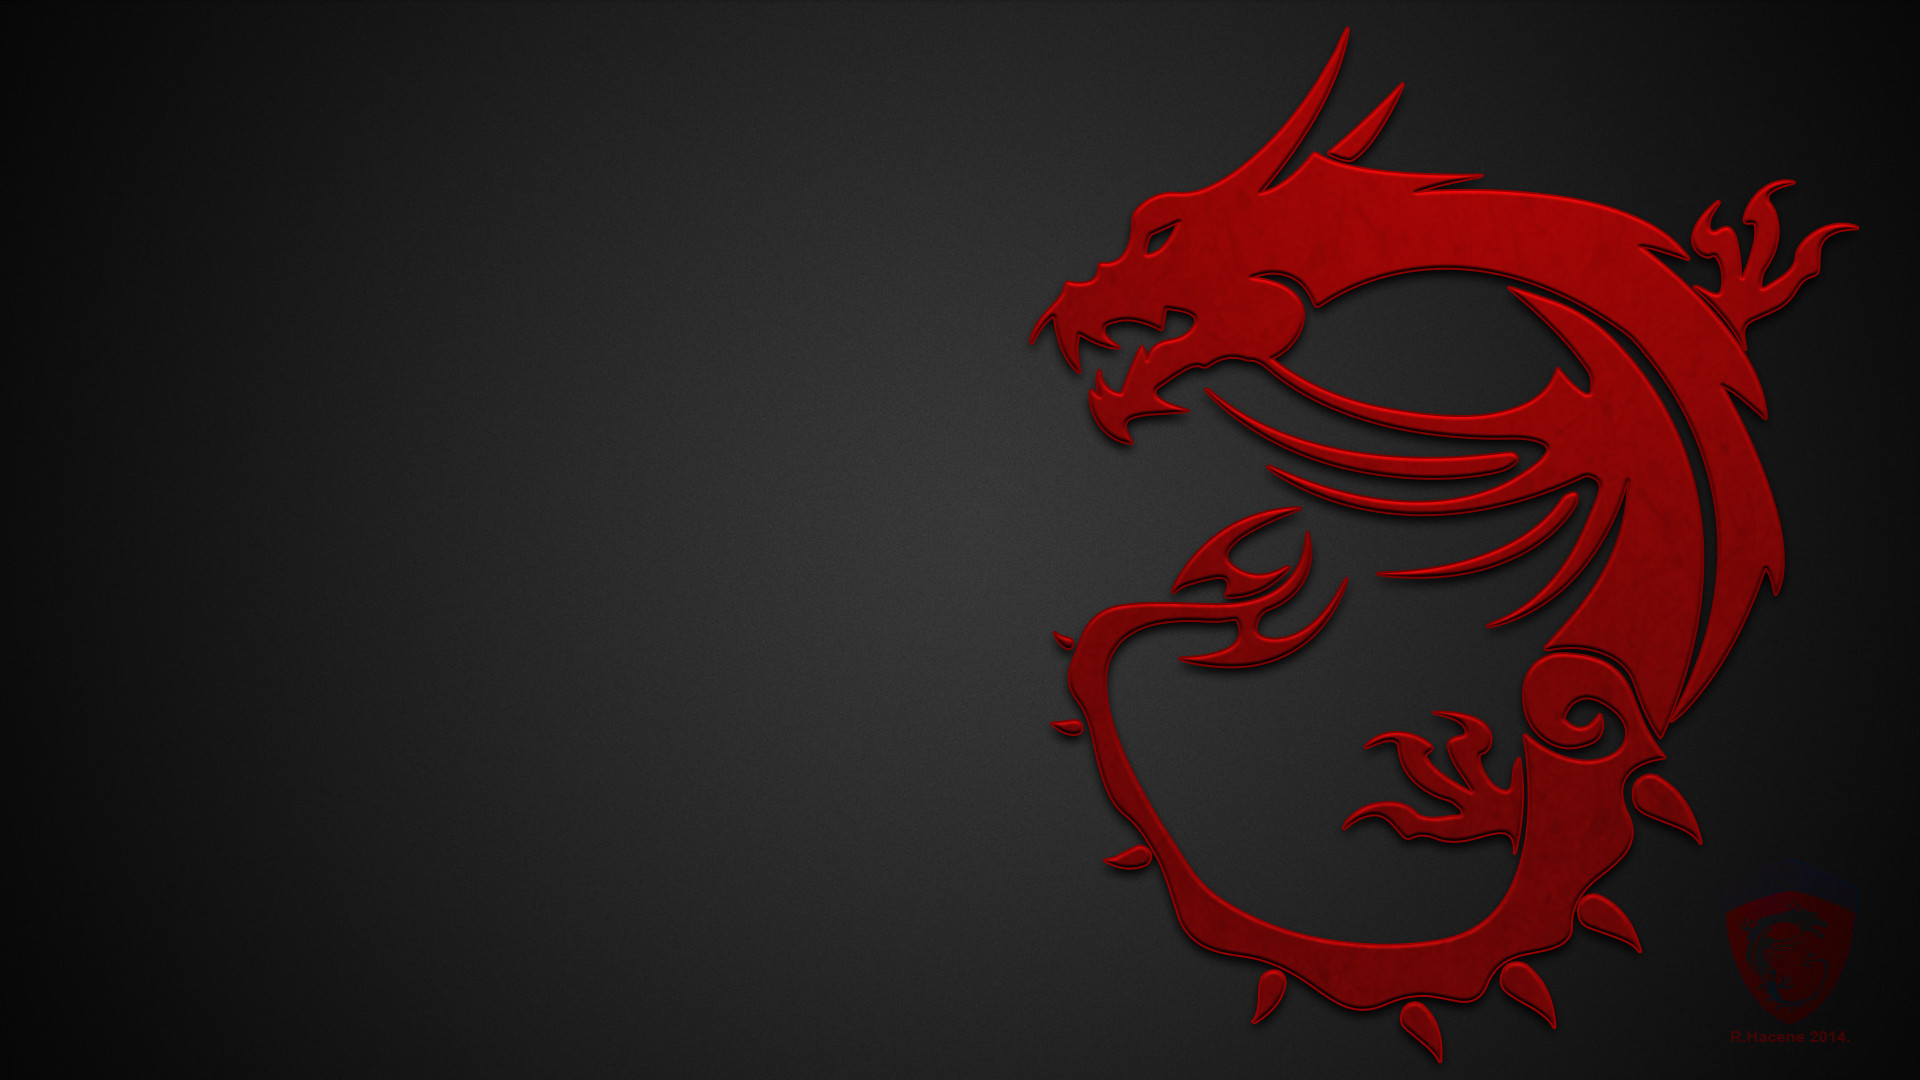 Msi wallpaper 4k 69 images - Red gaming wallpaper ...